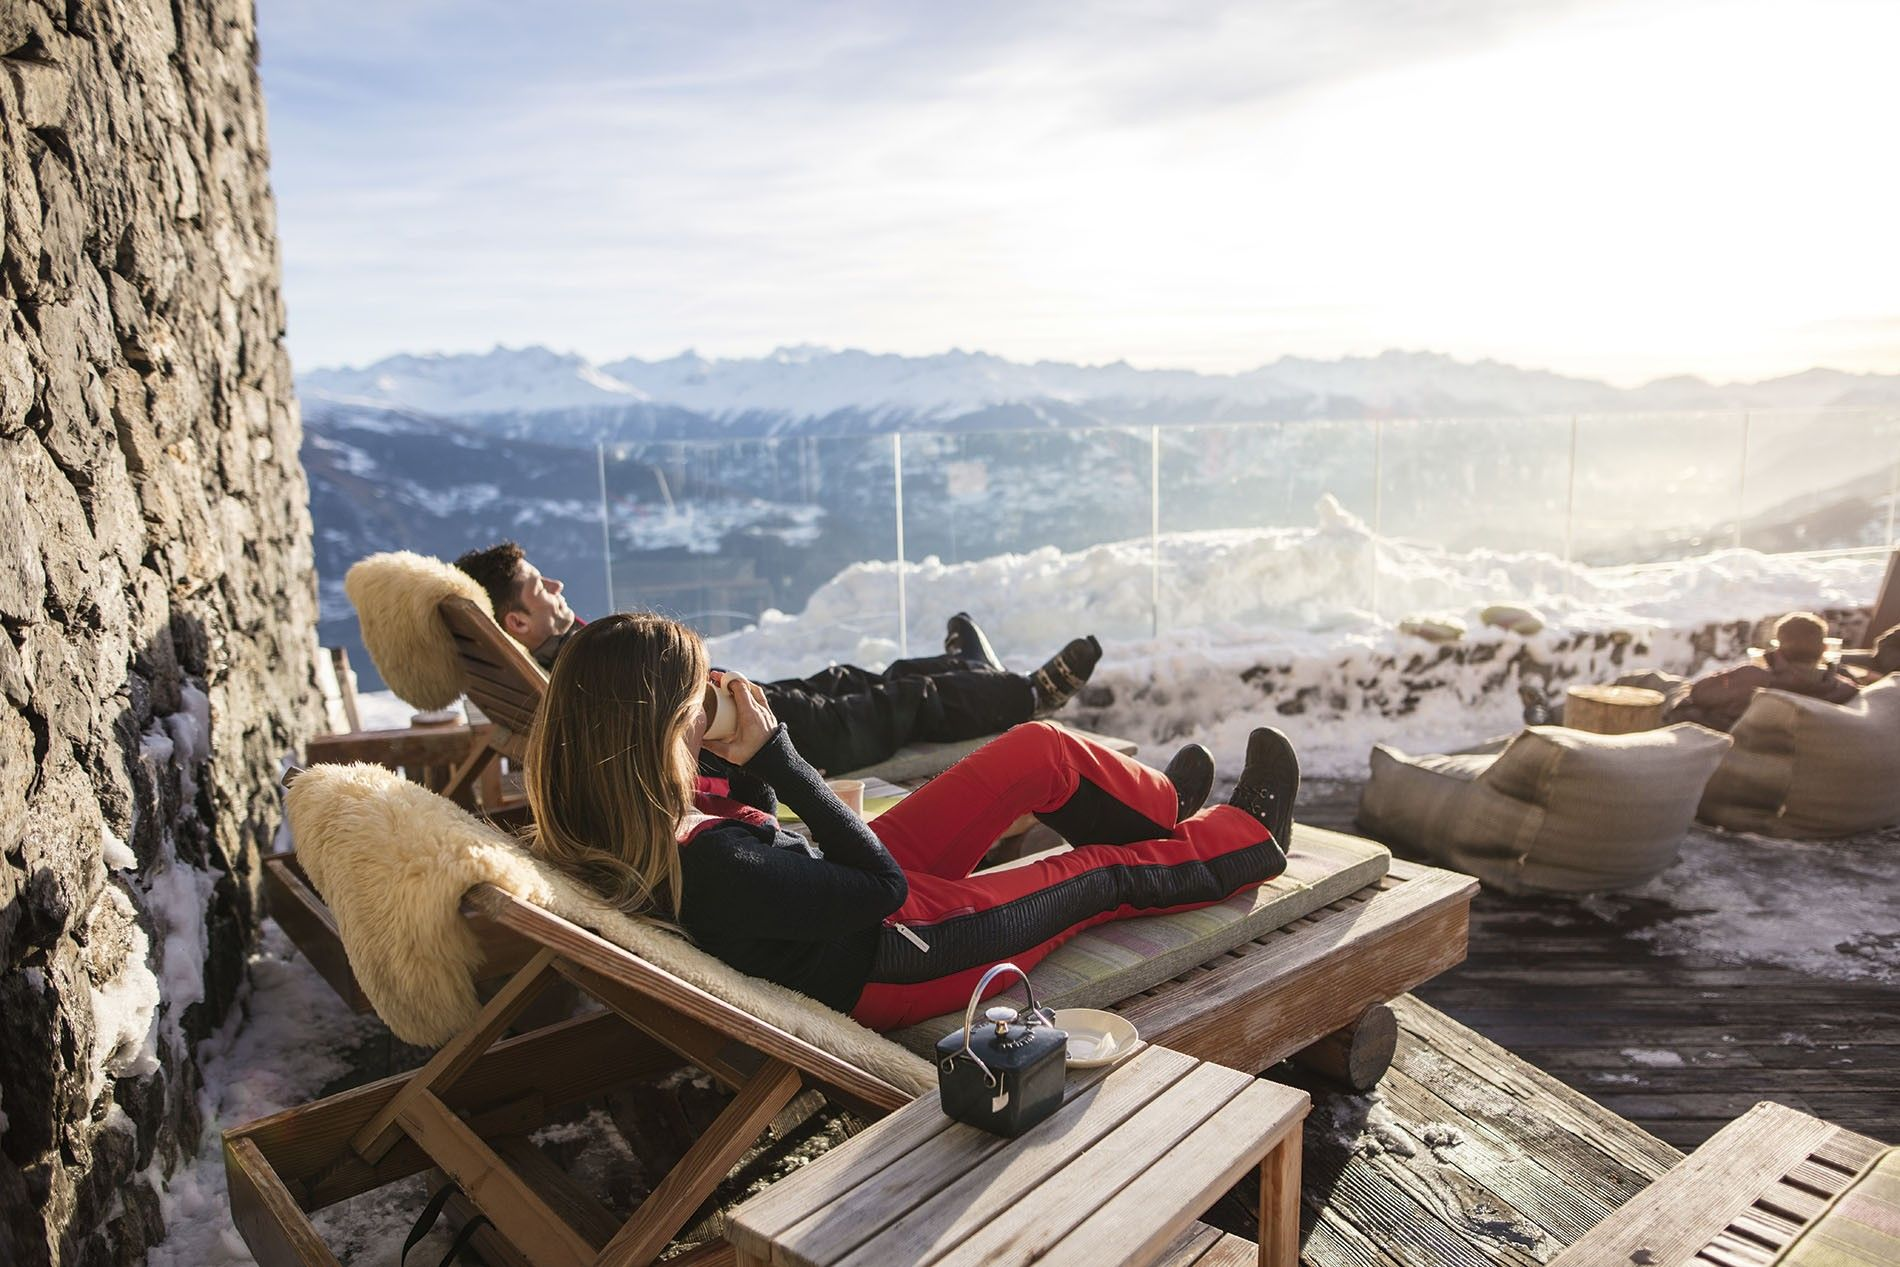 Après ski at Chetzeron Hotel Crans-Montana, a ski resort in the Valais region with far-reaching views over mountain peaks unfolding from Bietschhorn to Mont Blanc.